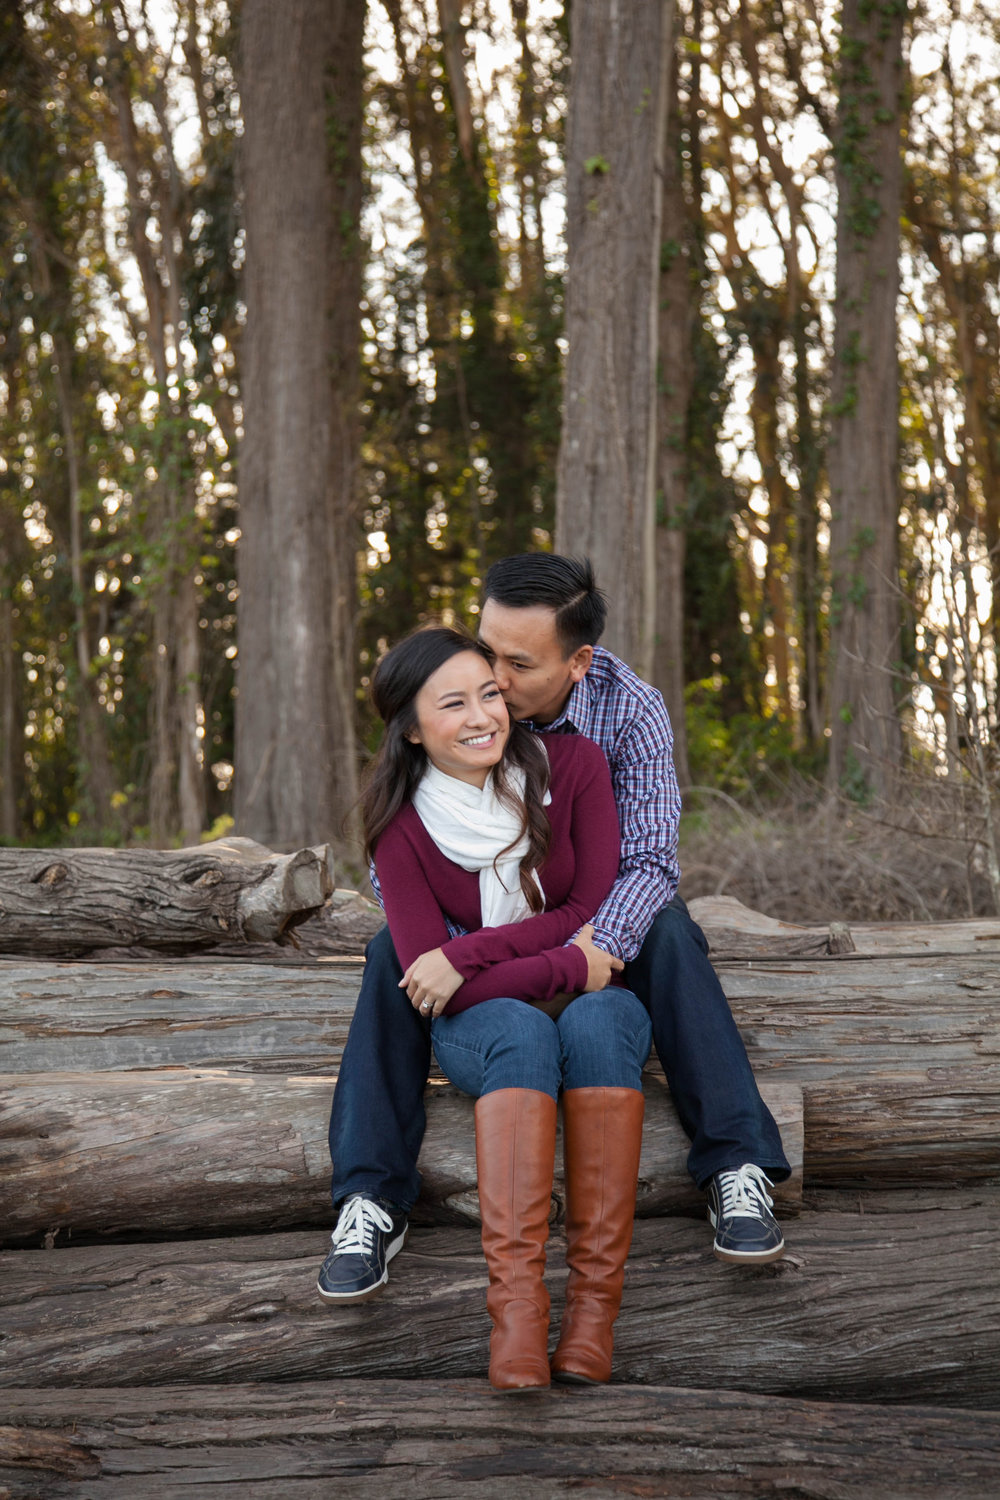 Meo Baaklini-San Francisco Presidio Engagement Photographer30.jpg